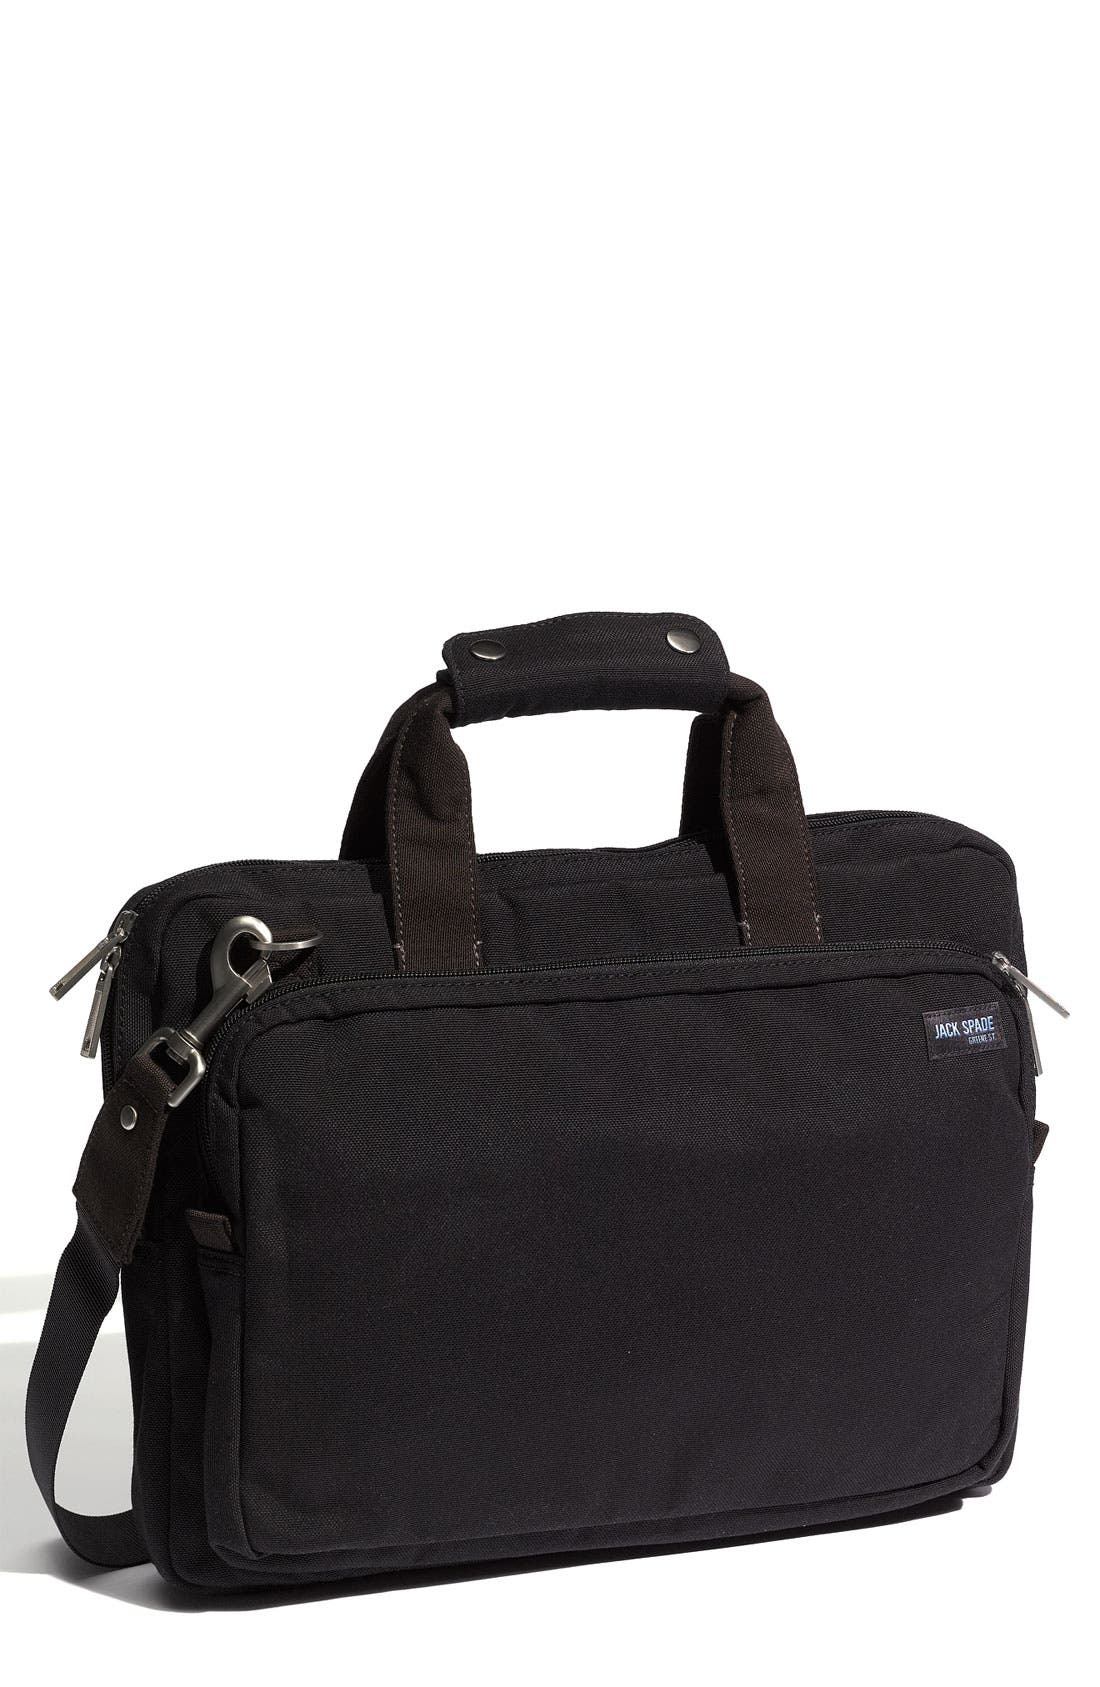 Main Image - Jack Spade 'City' Nylon Canvas Briefcase